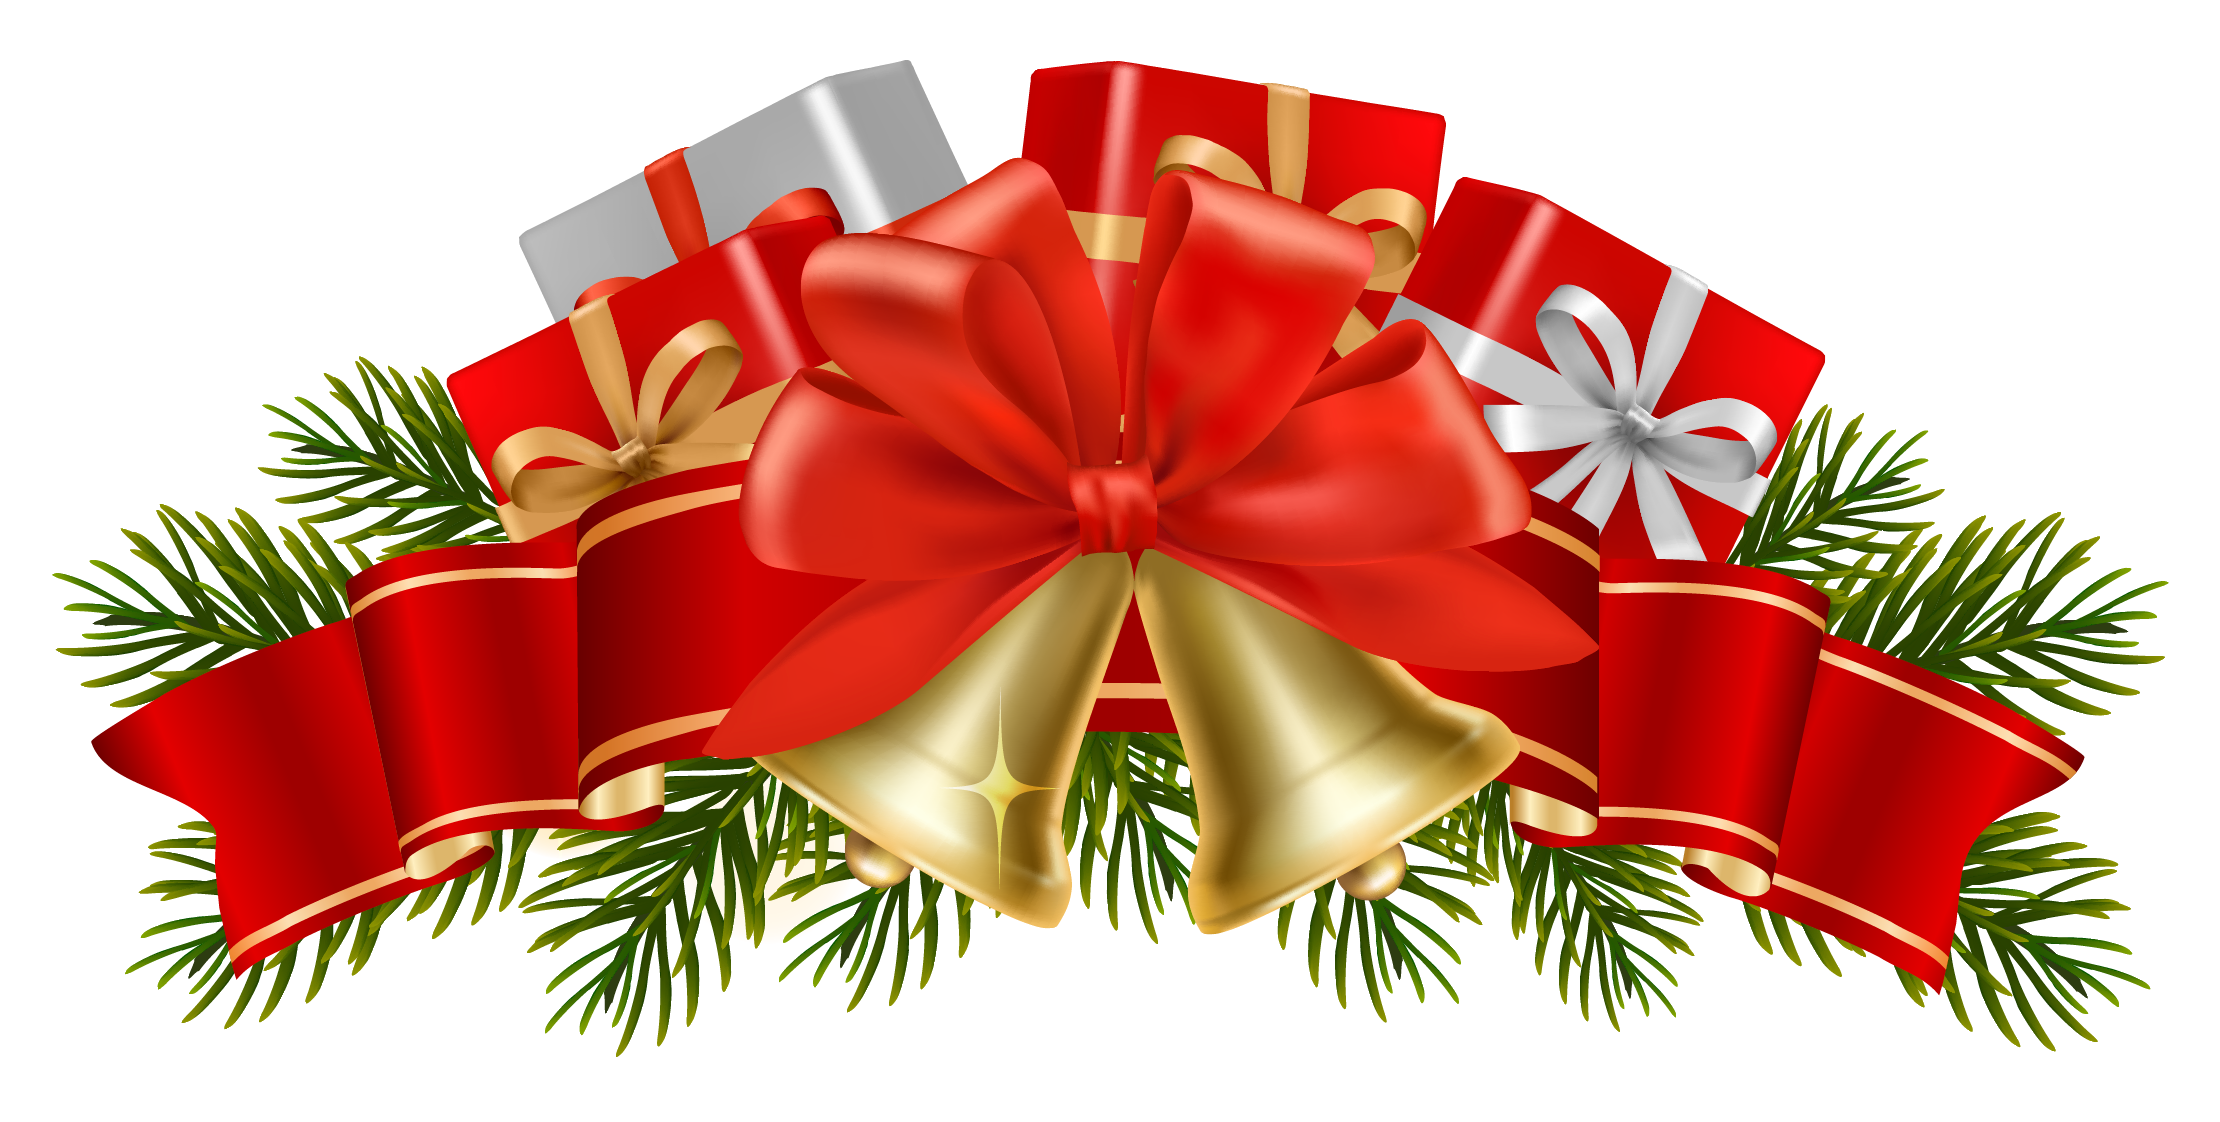 Christmas clipart transparent background. Picture library with png